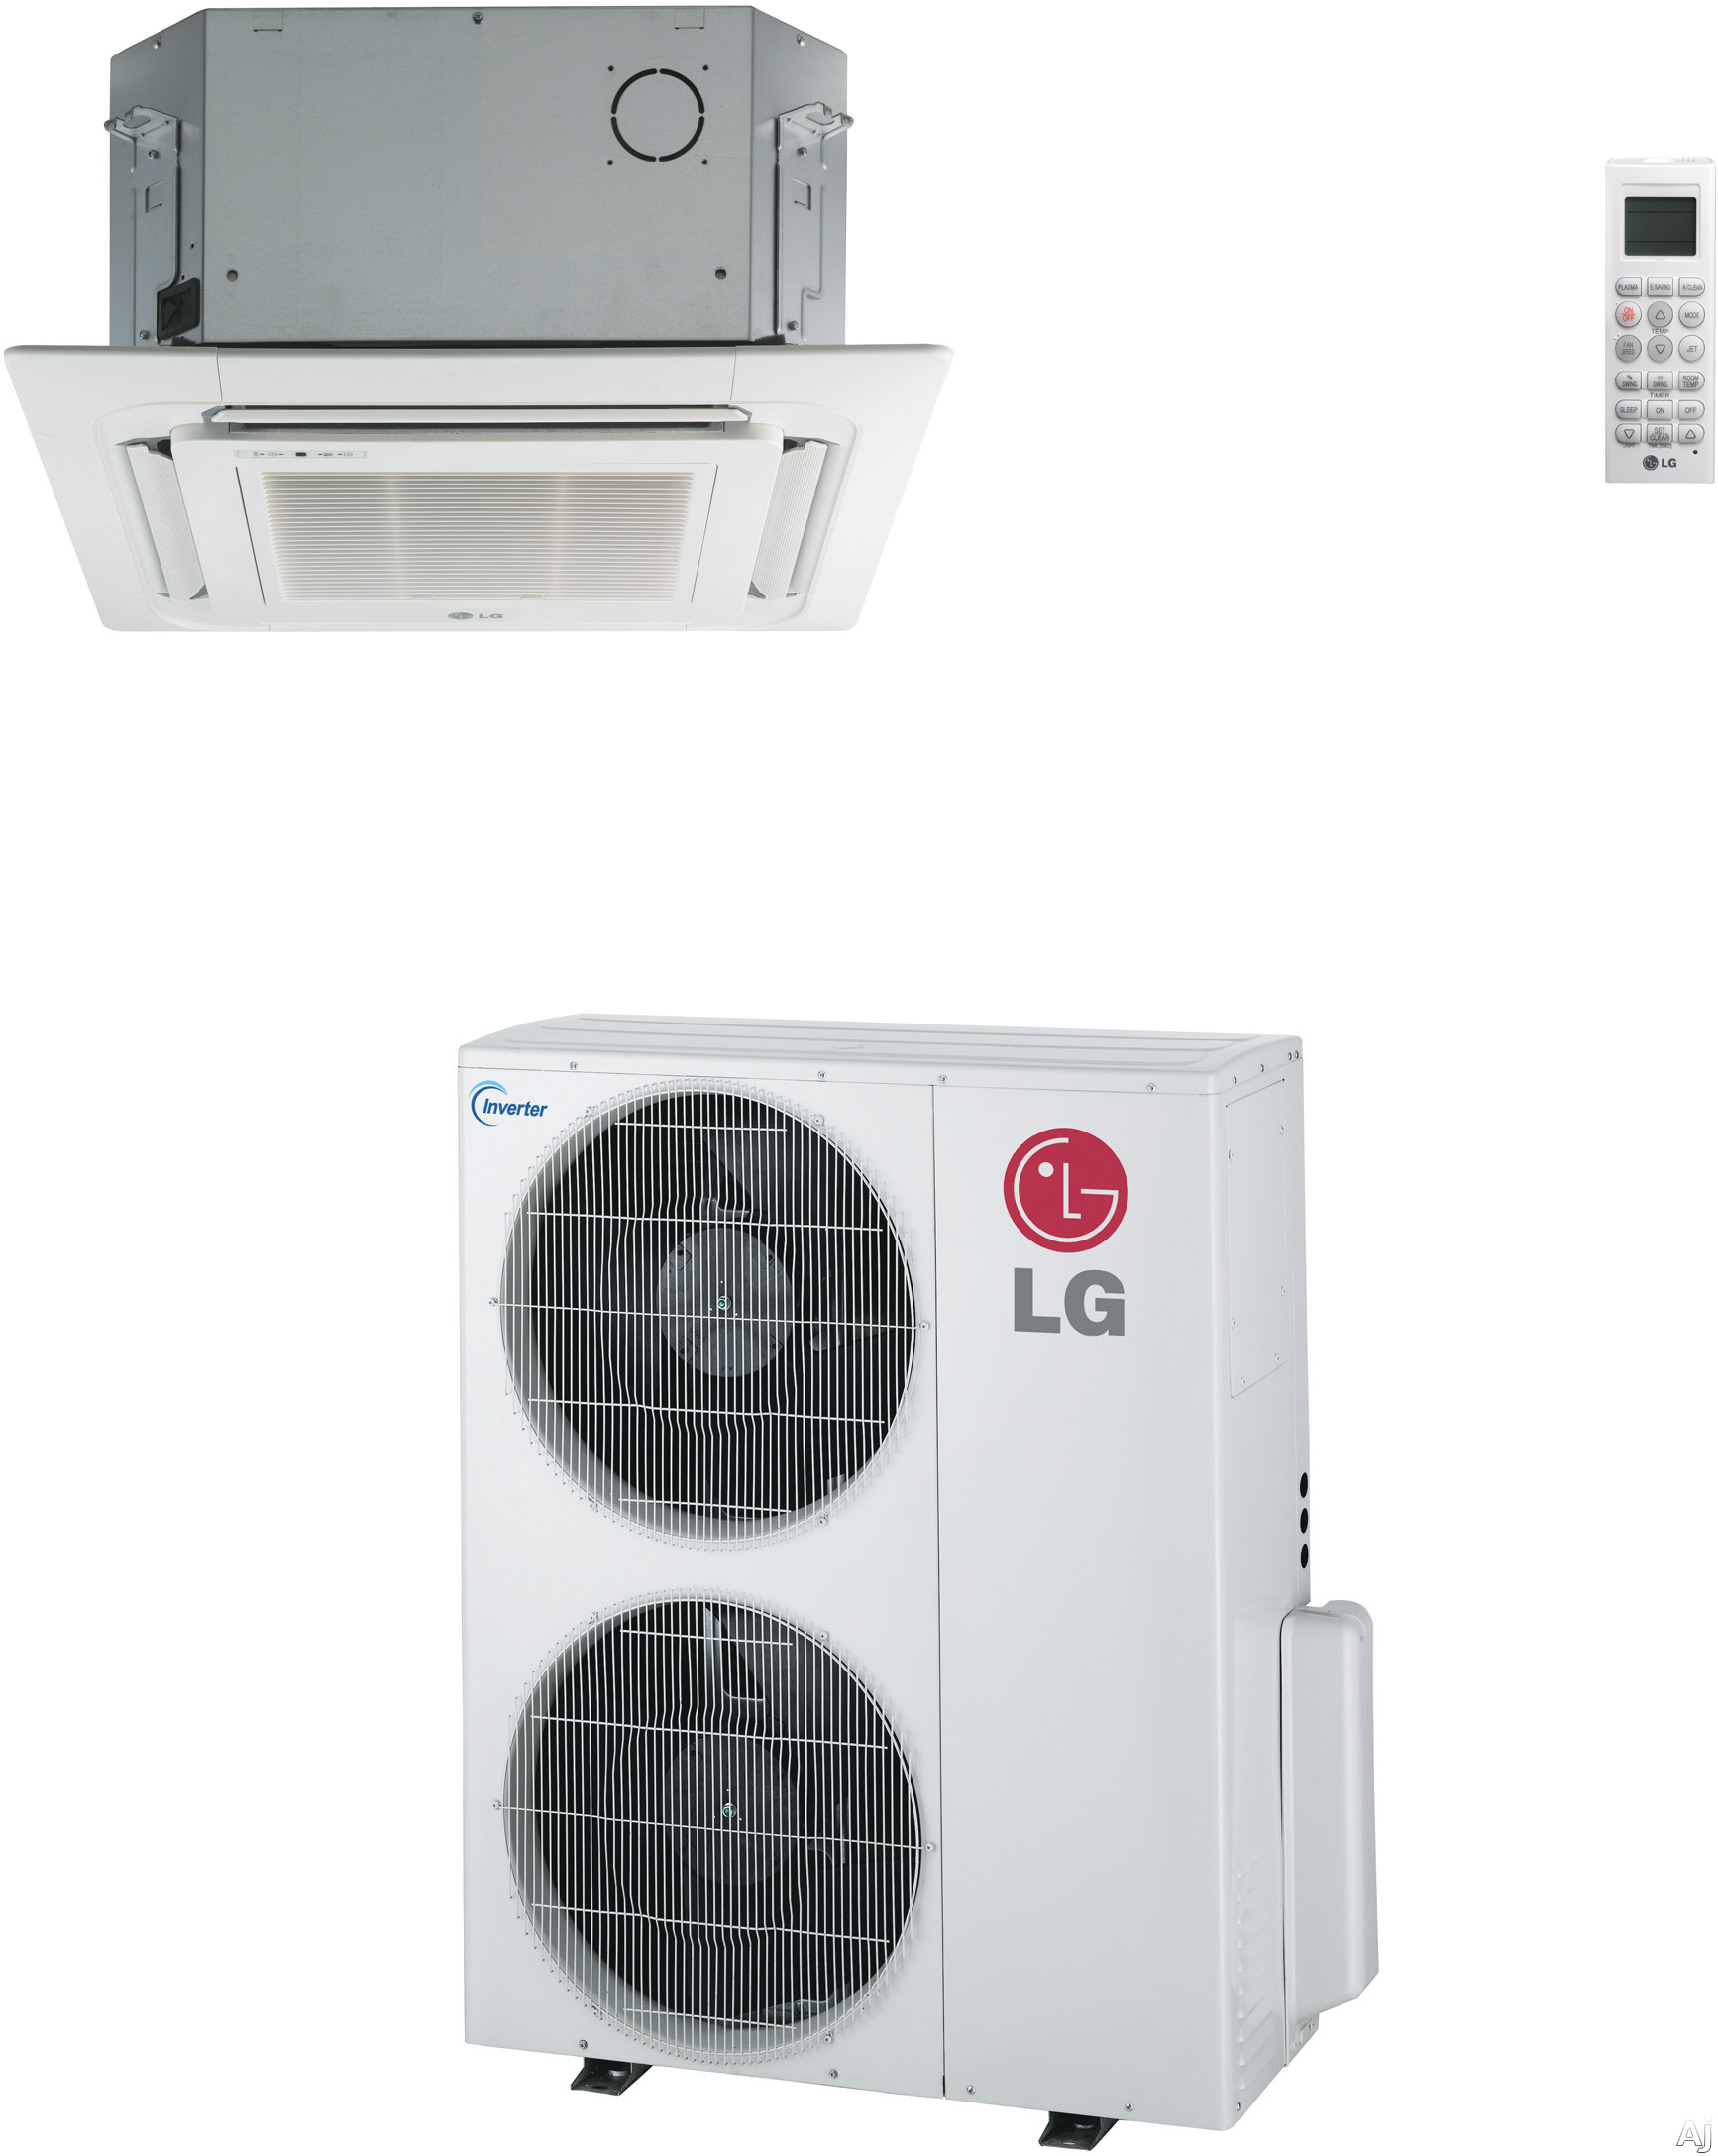 Home > Air Conditioners > Mini Split Air Conditioners > LC427HV #A32841